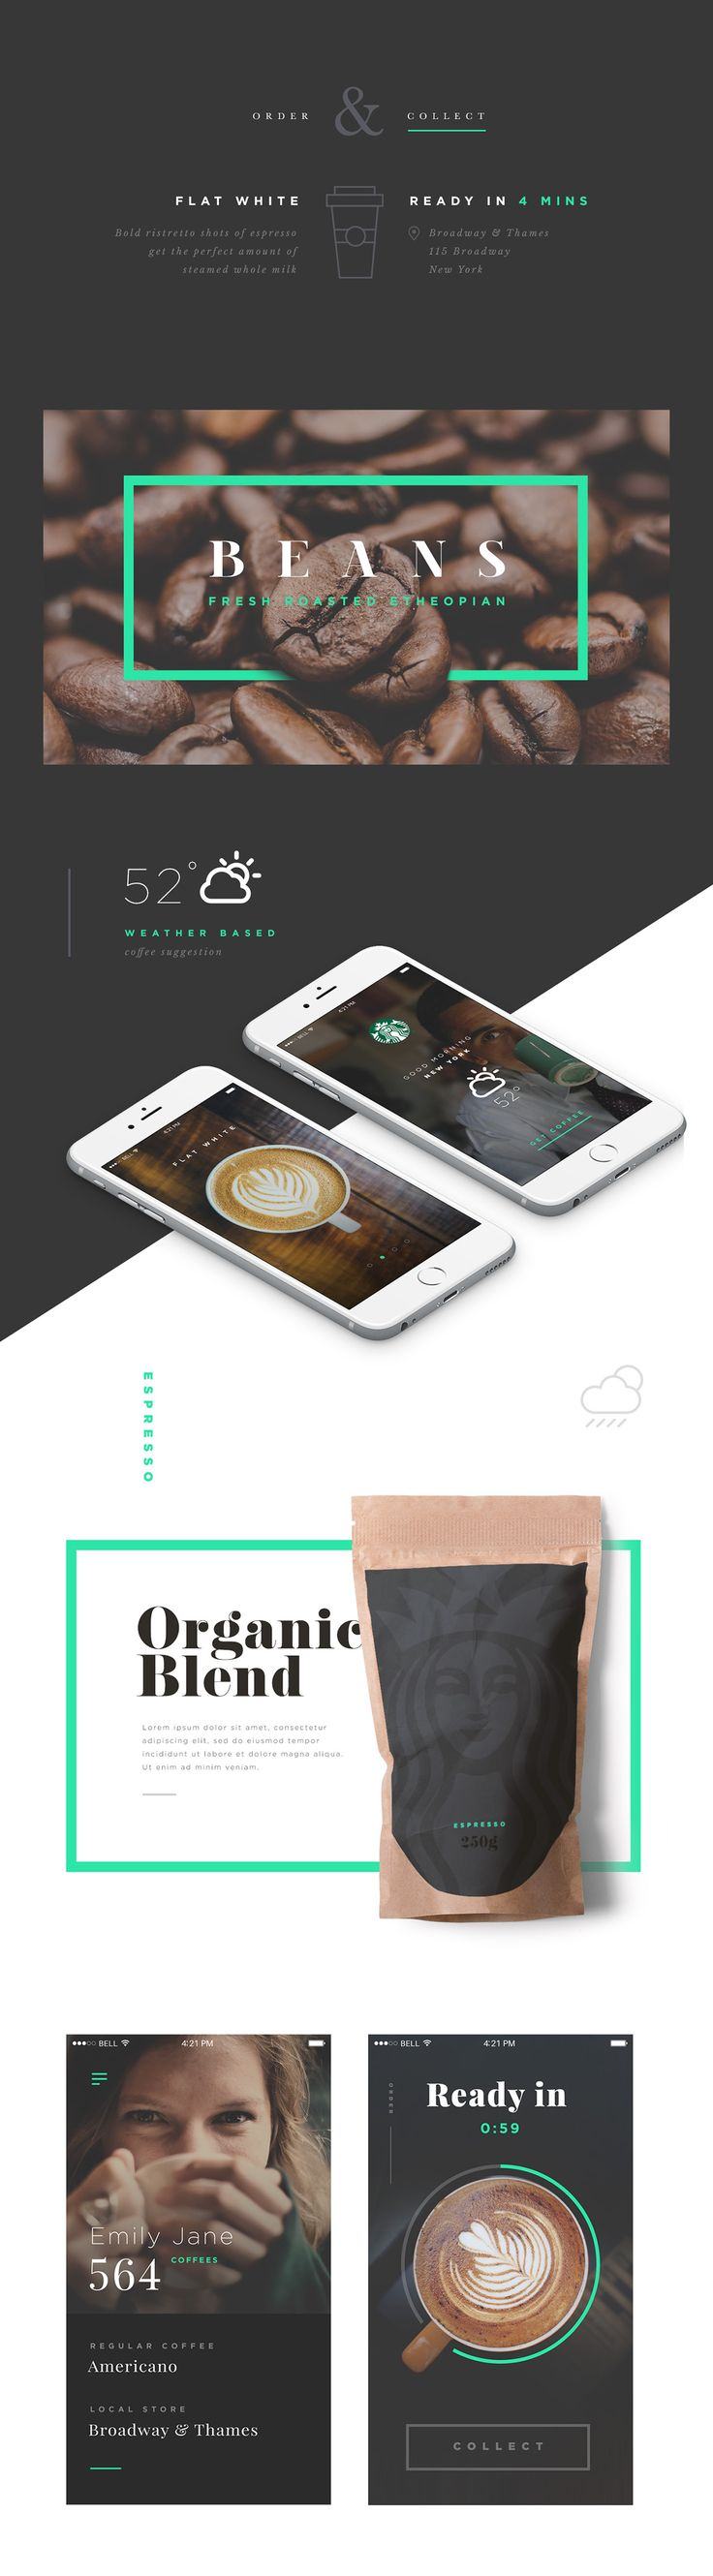 Starbucks is an amazing brand to work on. Coffee is also such a necessary part of life. I looked at the user experience waking up in the morning and getting coffee as quickly as possible through a visual journey based on weather suggestions.